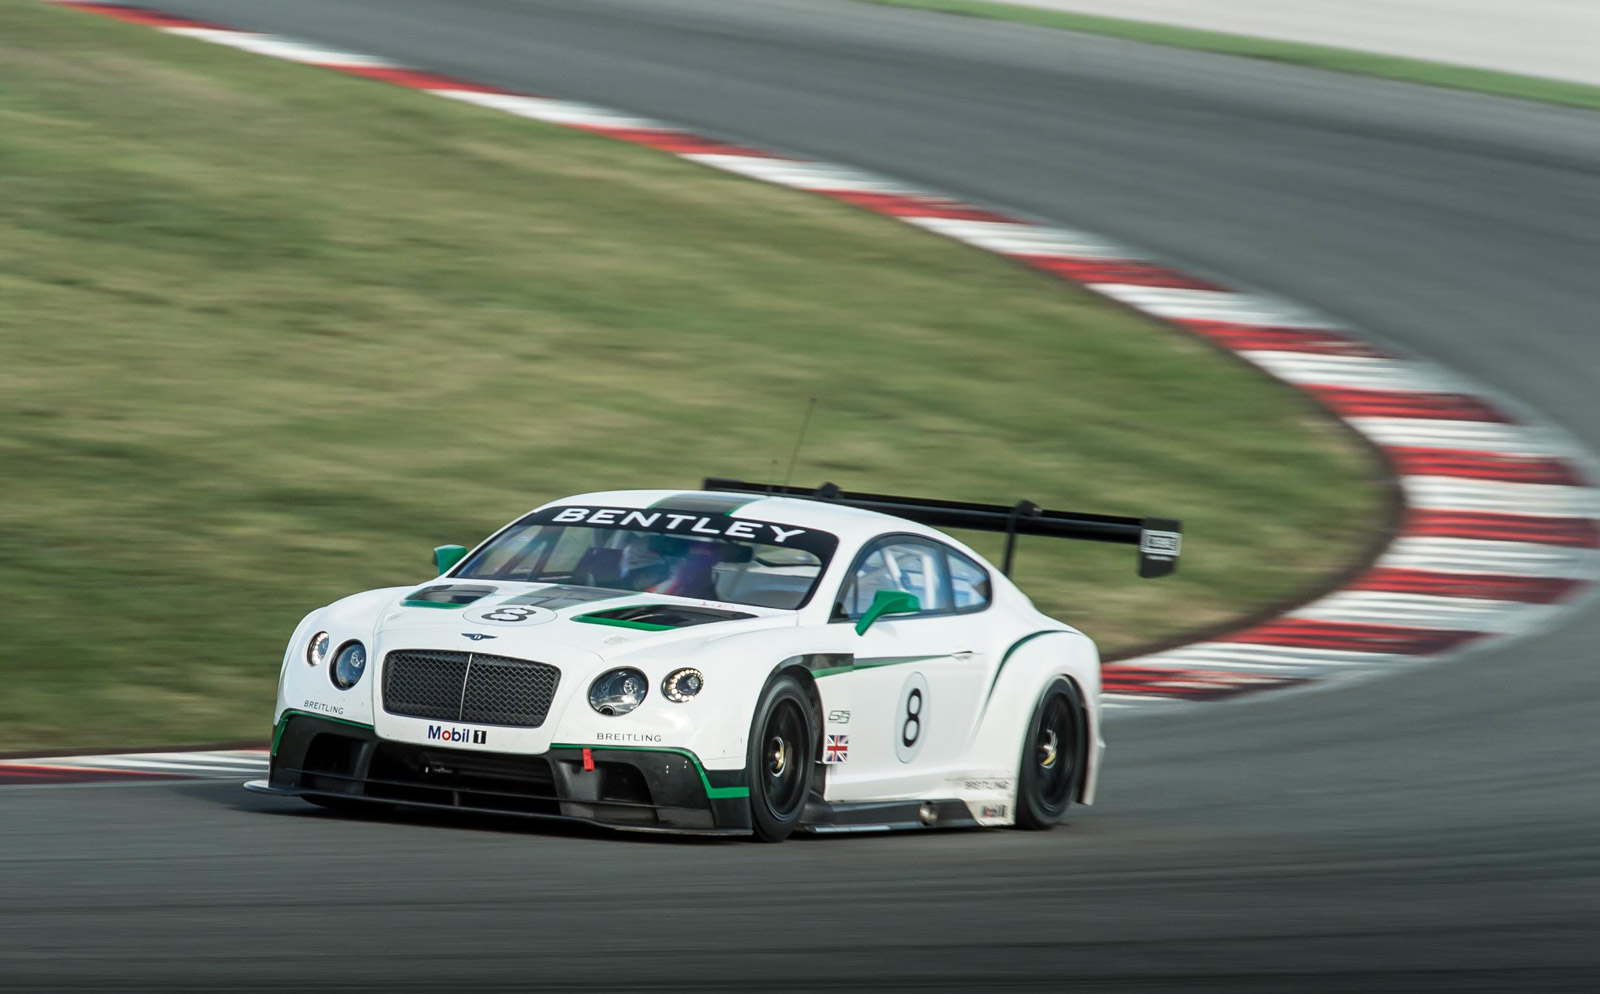 Bentley To Enter Nürburgring 24 Hours For First Time In 2015